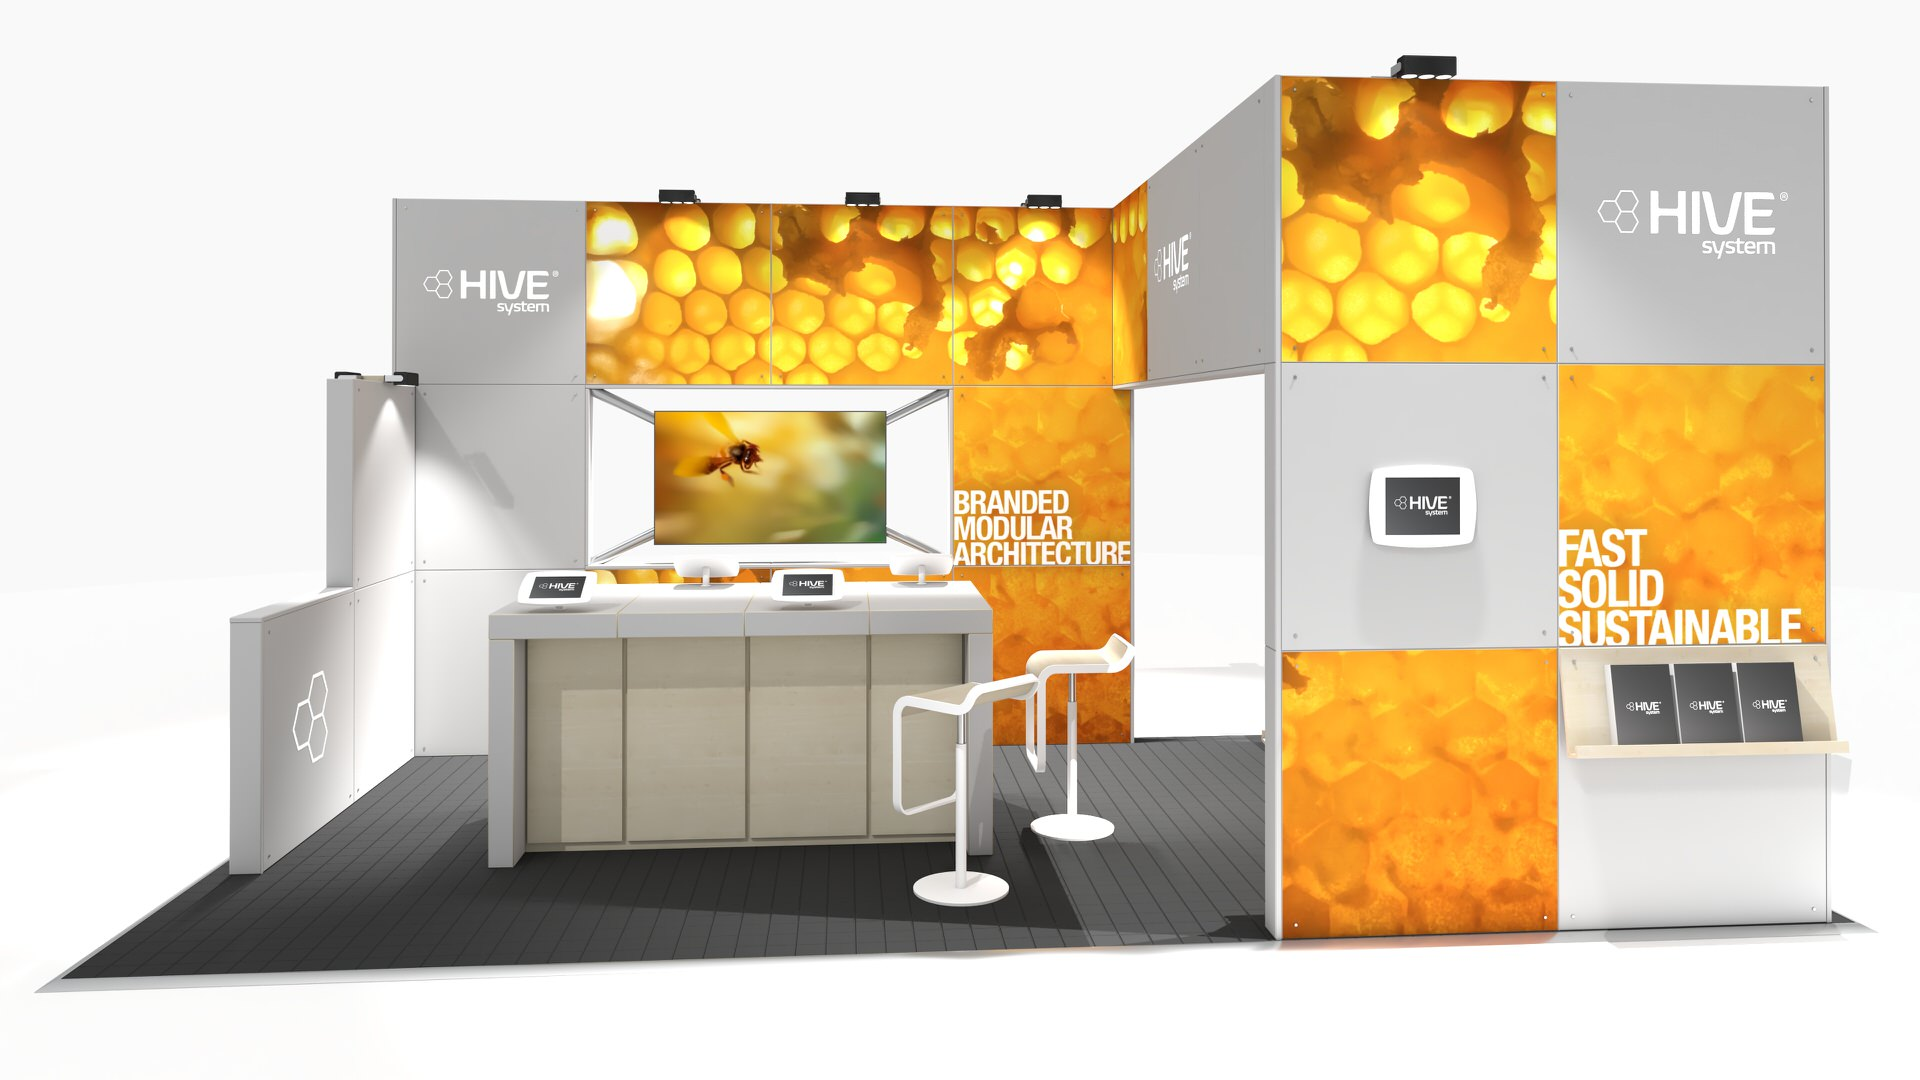 HIVE_Sustainable_Exhibition_System_01.jpeg